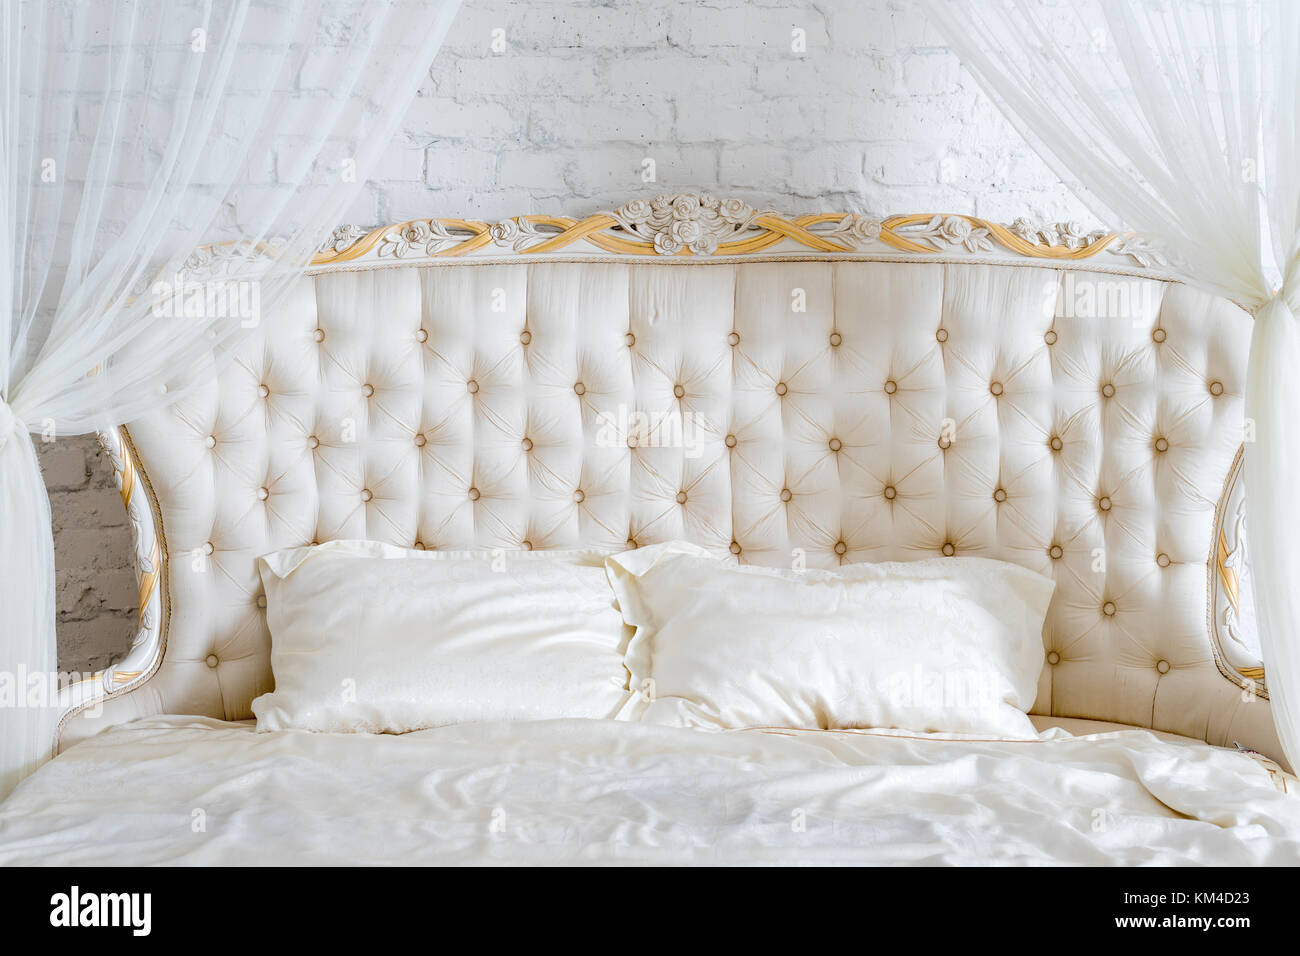 Big Comfortable Double Bed In Elegant Classic Bedroom. Luxury Elegant White  With Gold Interior Design